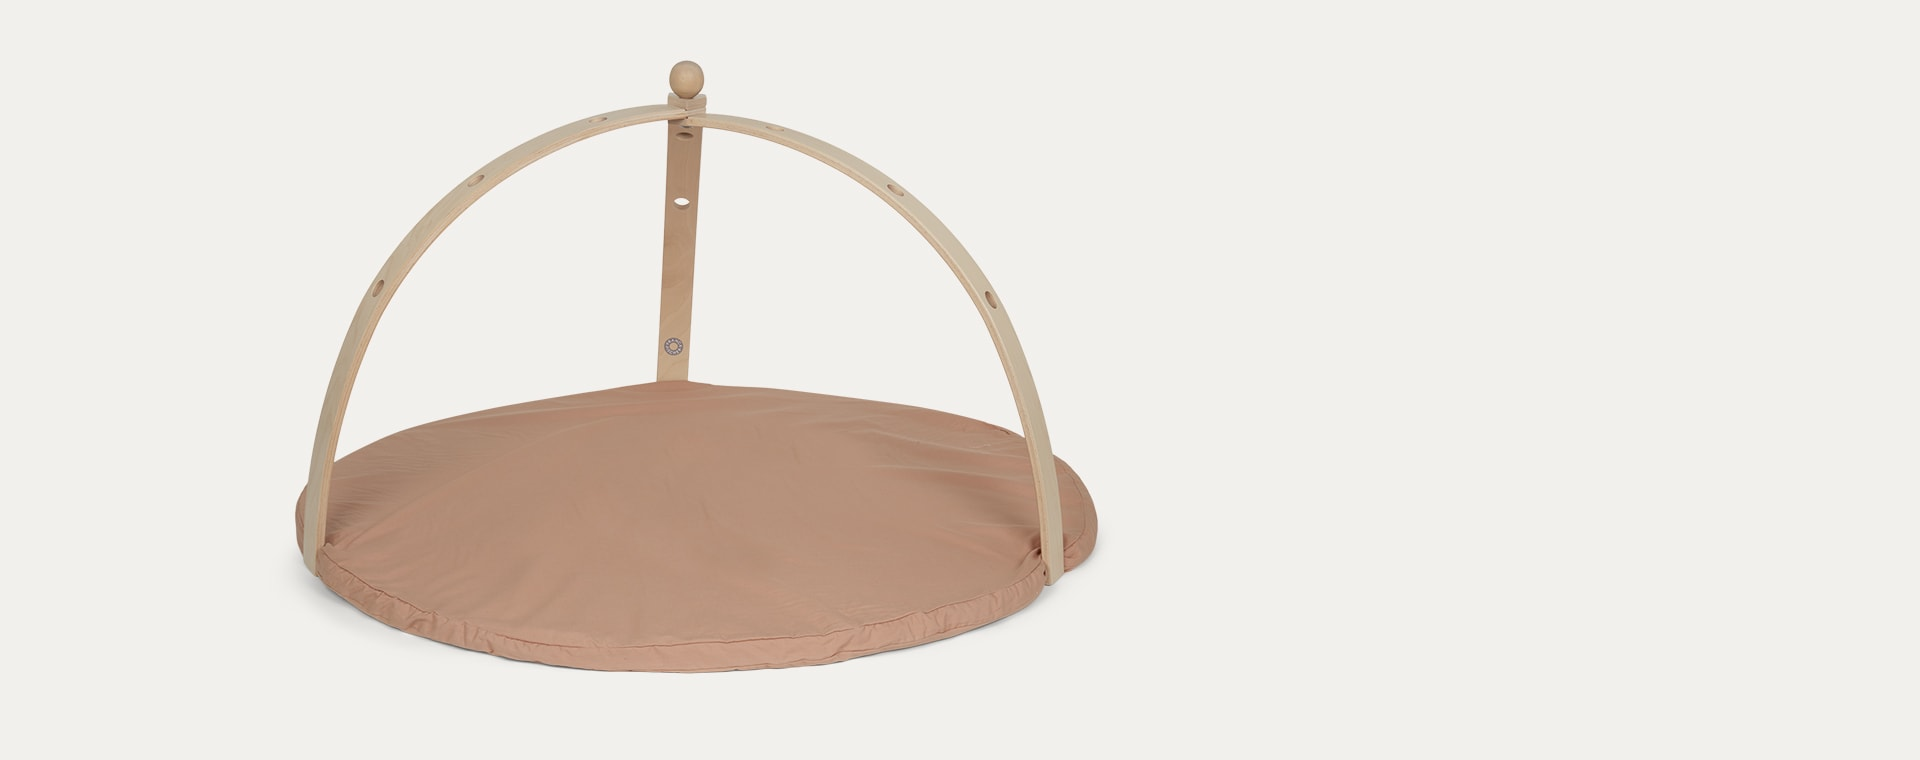 Neutral Franck & Fischer Foldable Play Gym